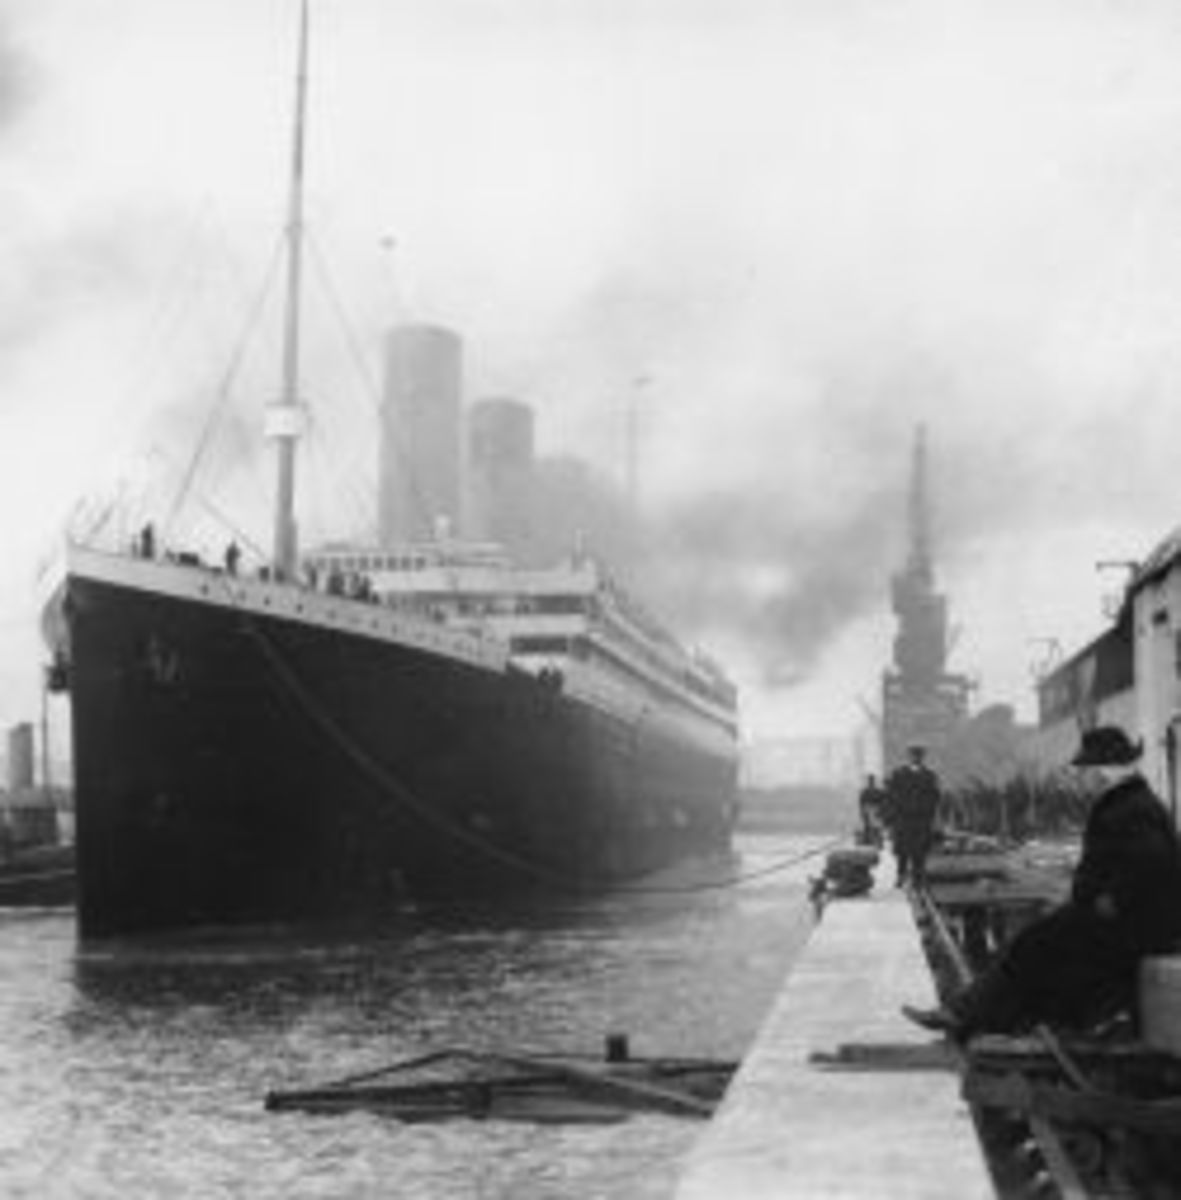 A photo of the Titanic steamship